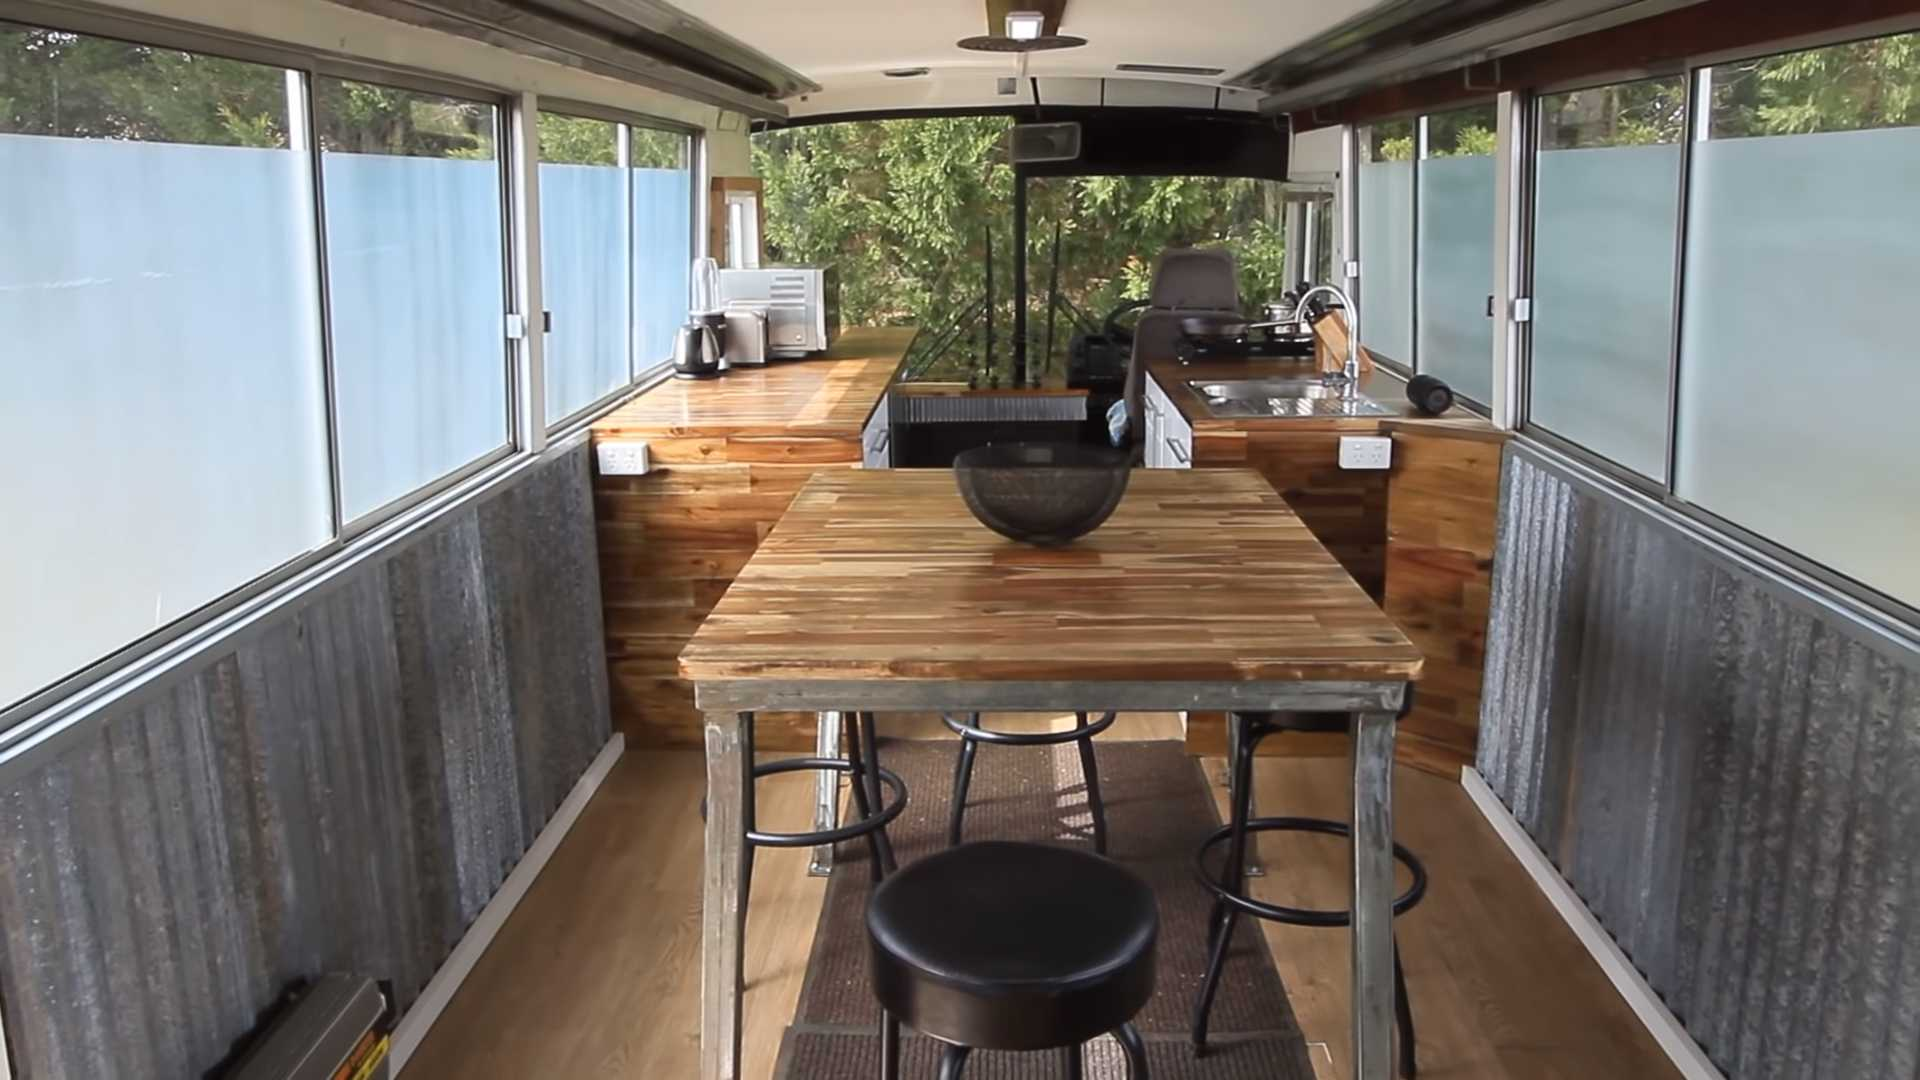 Phenomenal Bonkers Bendy Bus Rv Conversion Is Like The Tardis From Dr Who Home Interior And Landscaping Oversignezvosmurscom